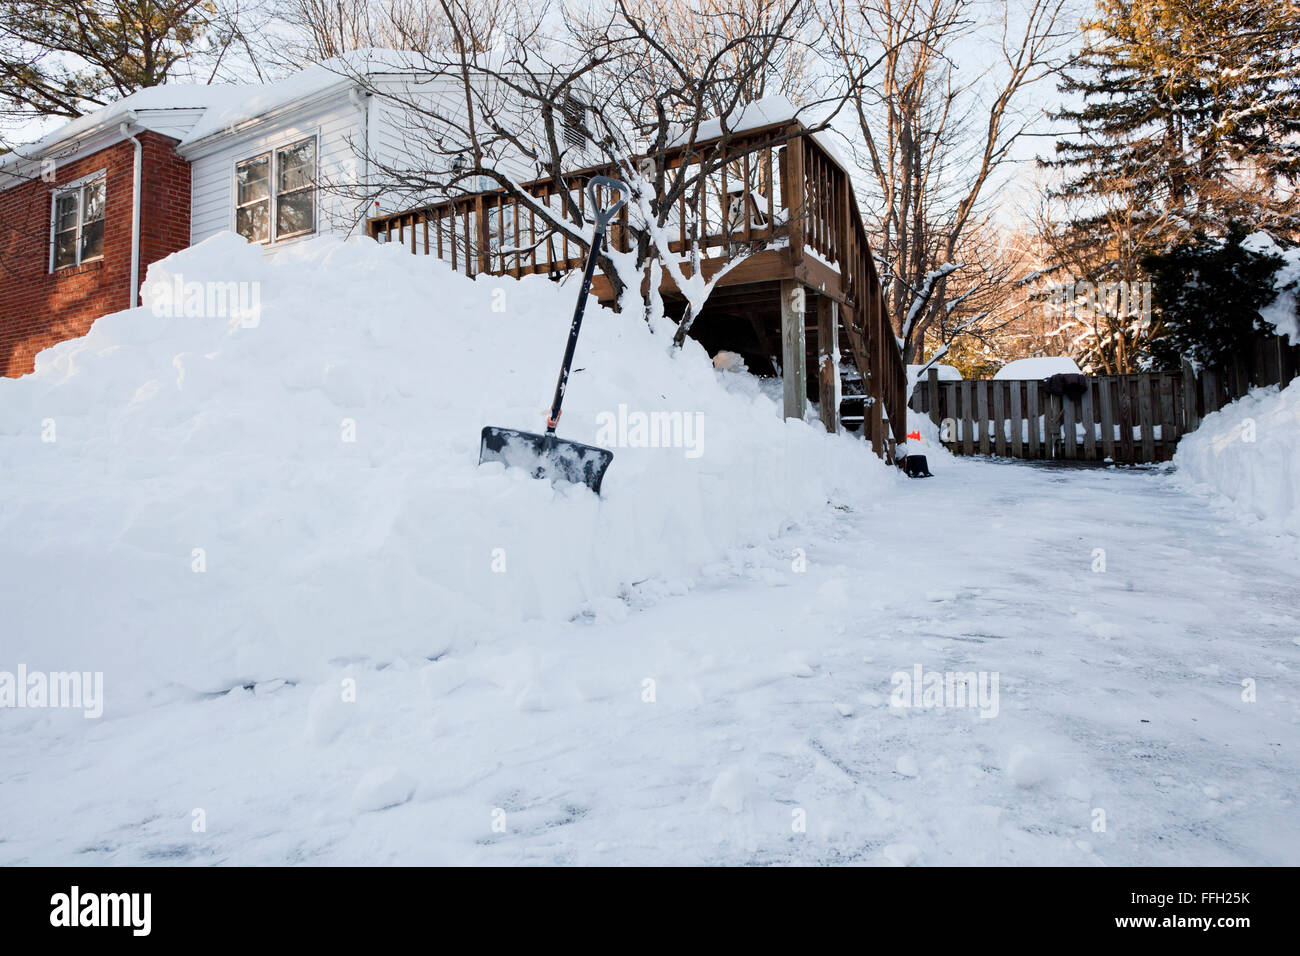 Shovel Snow Pile High Resolution Stock Photography and Images - Alamy